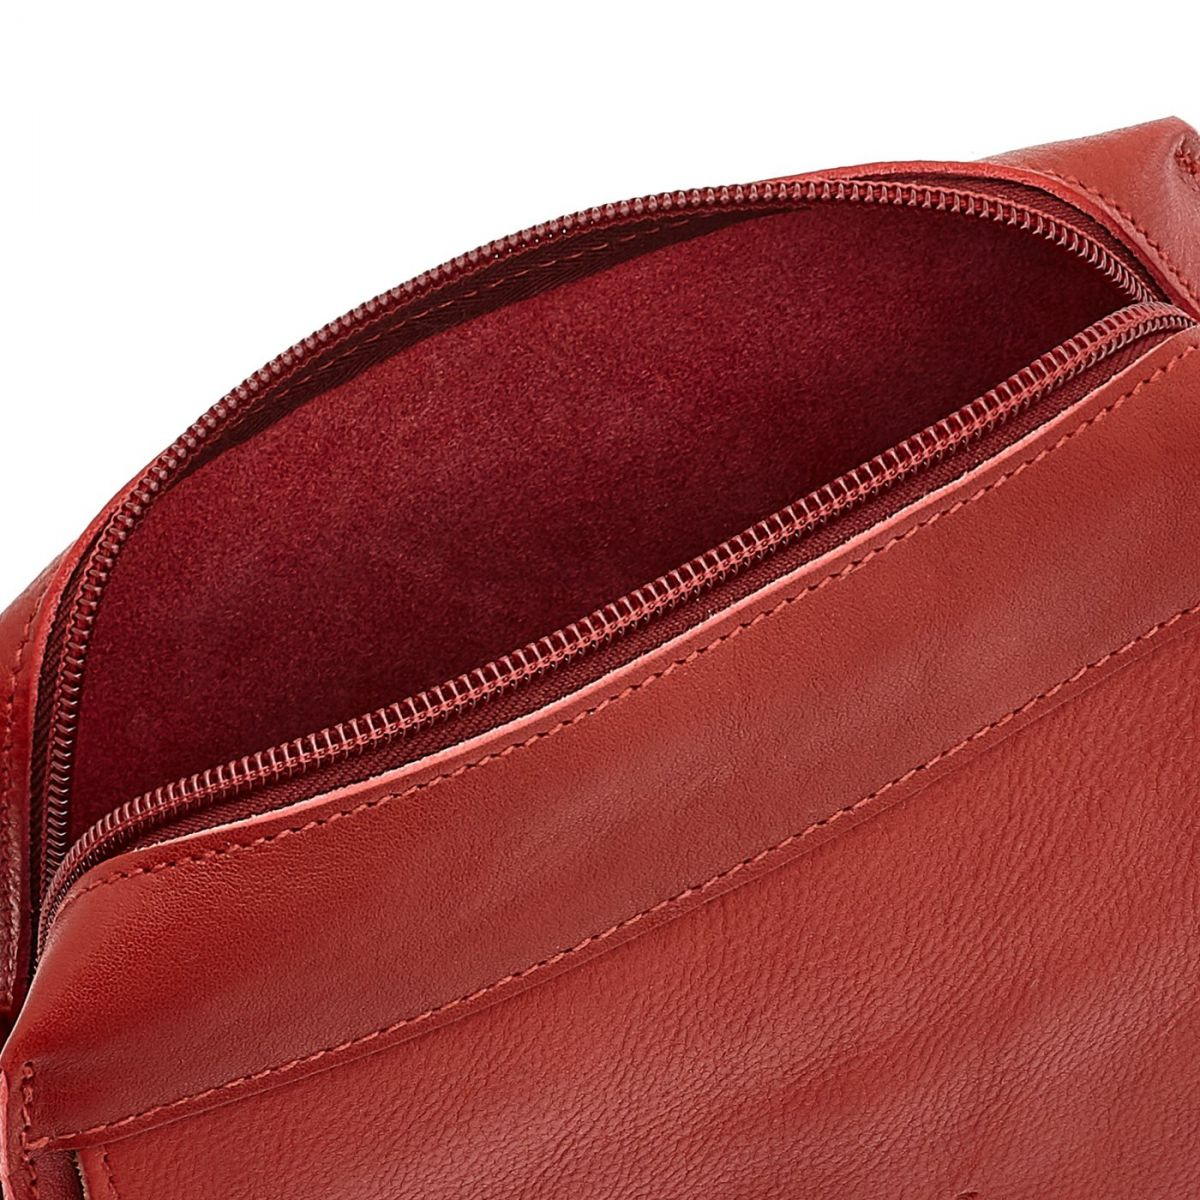 Women's Crossbody Bag Salina in Cowhide Leather BCR174 color Red | Details